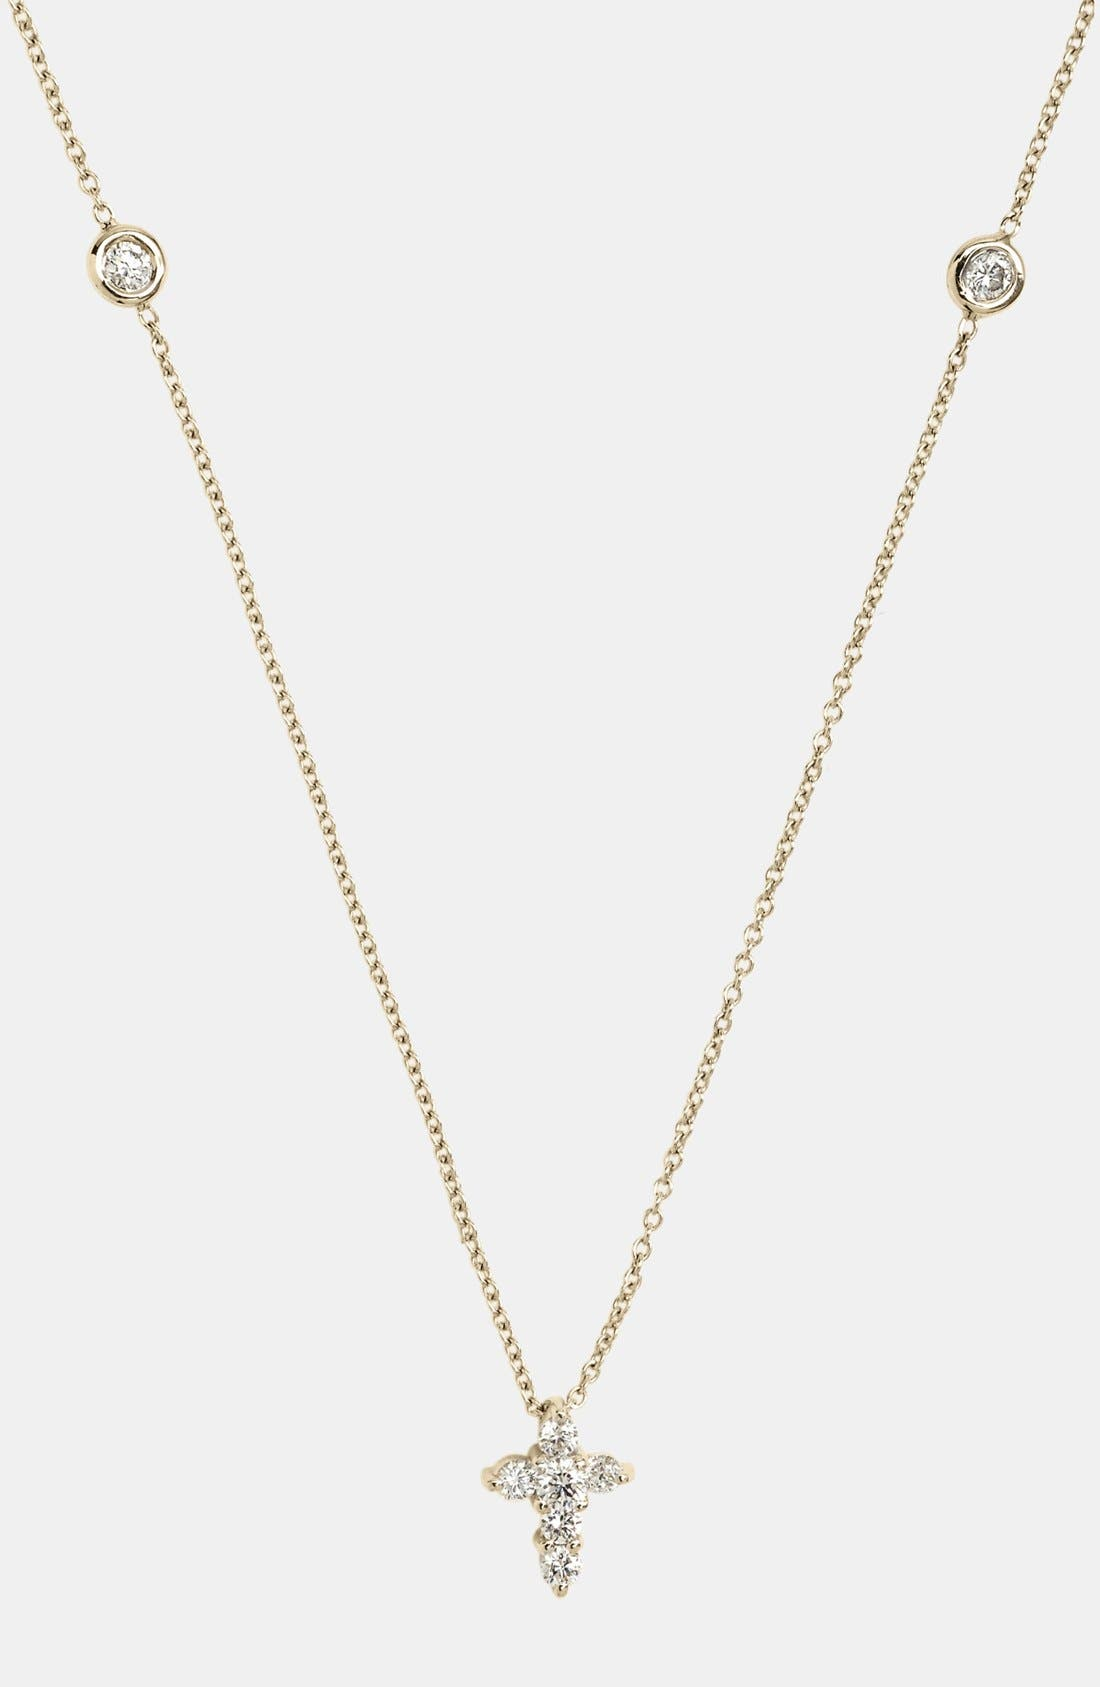 Alternate Image 1 Selected - Roberto Coin 'Tiny Treasures' Diamond Cross Pendant Necklace (Nordstrom Exclusive)